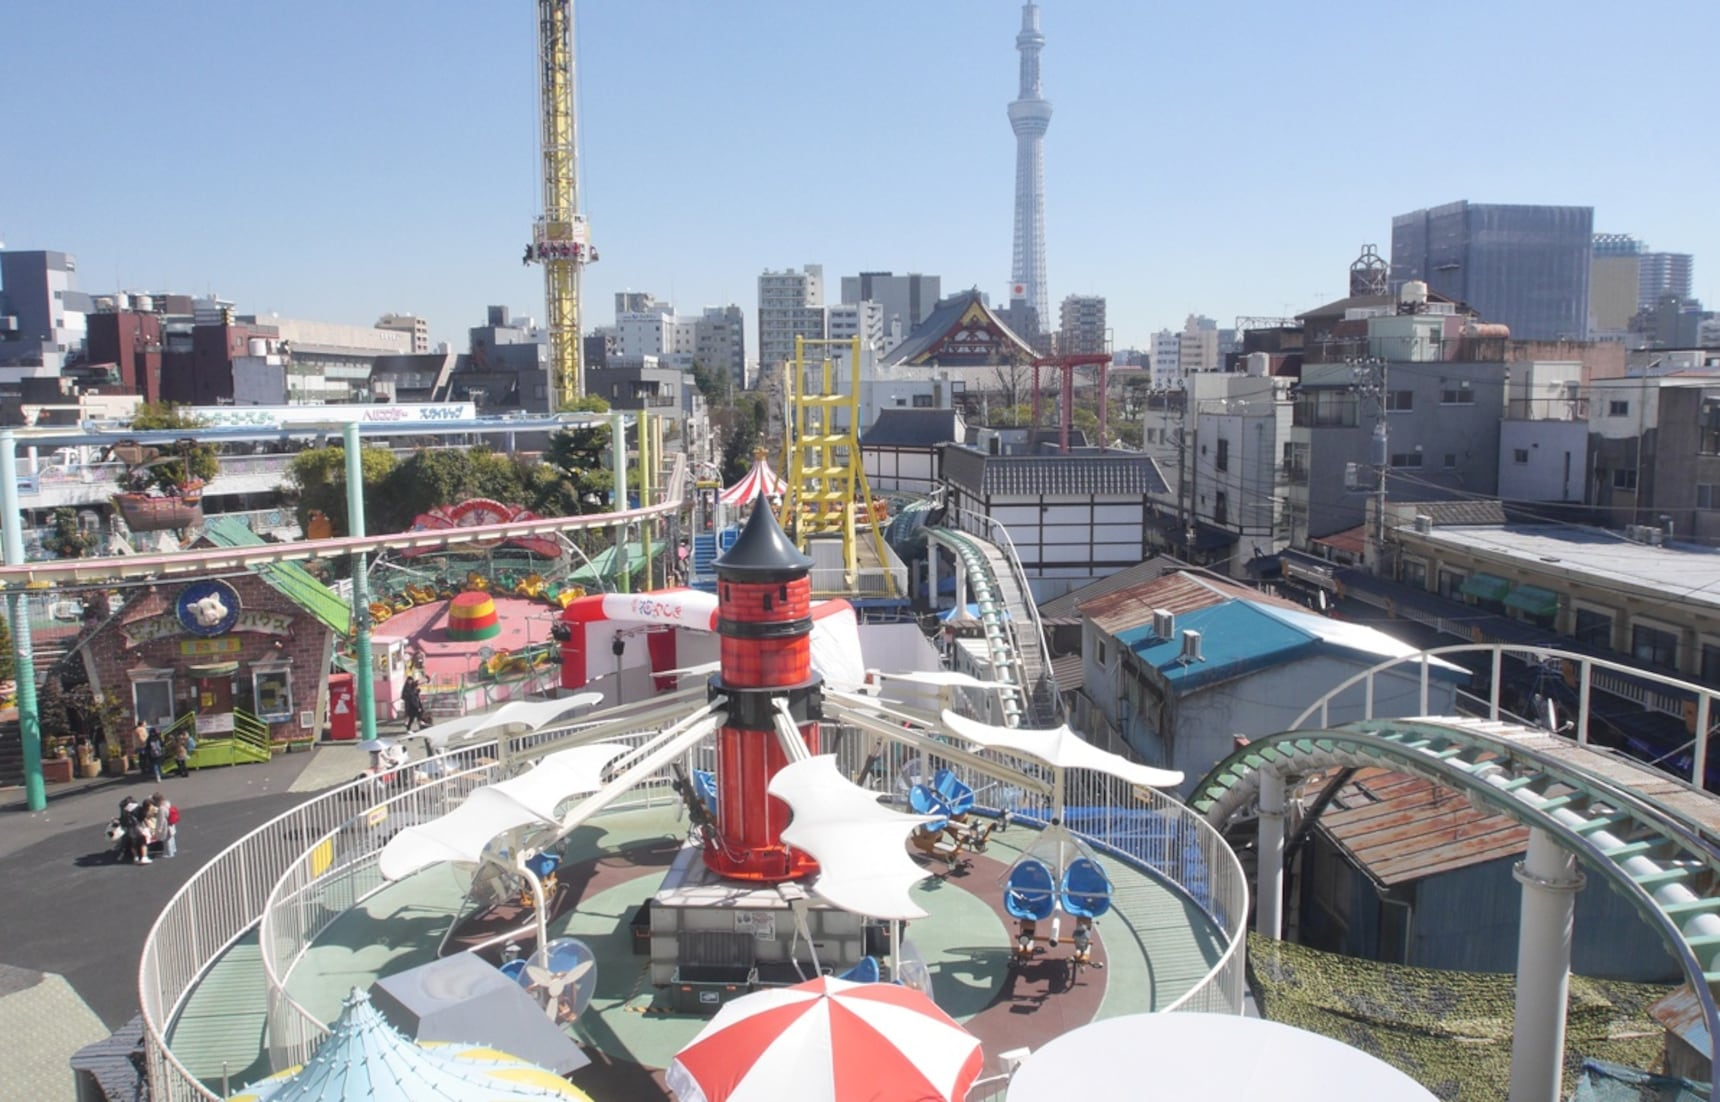 Japan's Oldest Theme Park: Asakusa Hanayashiki